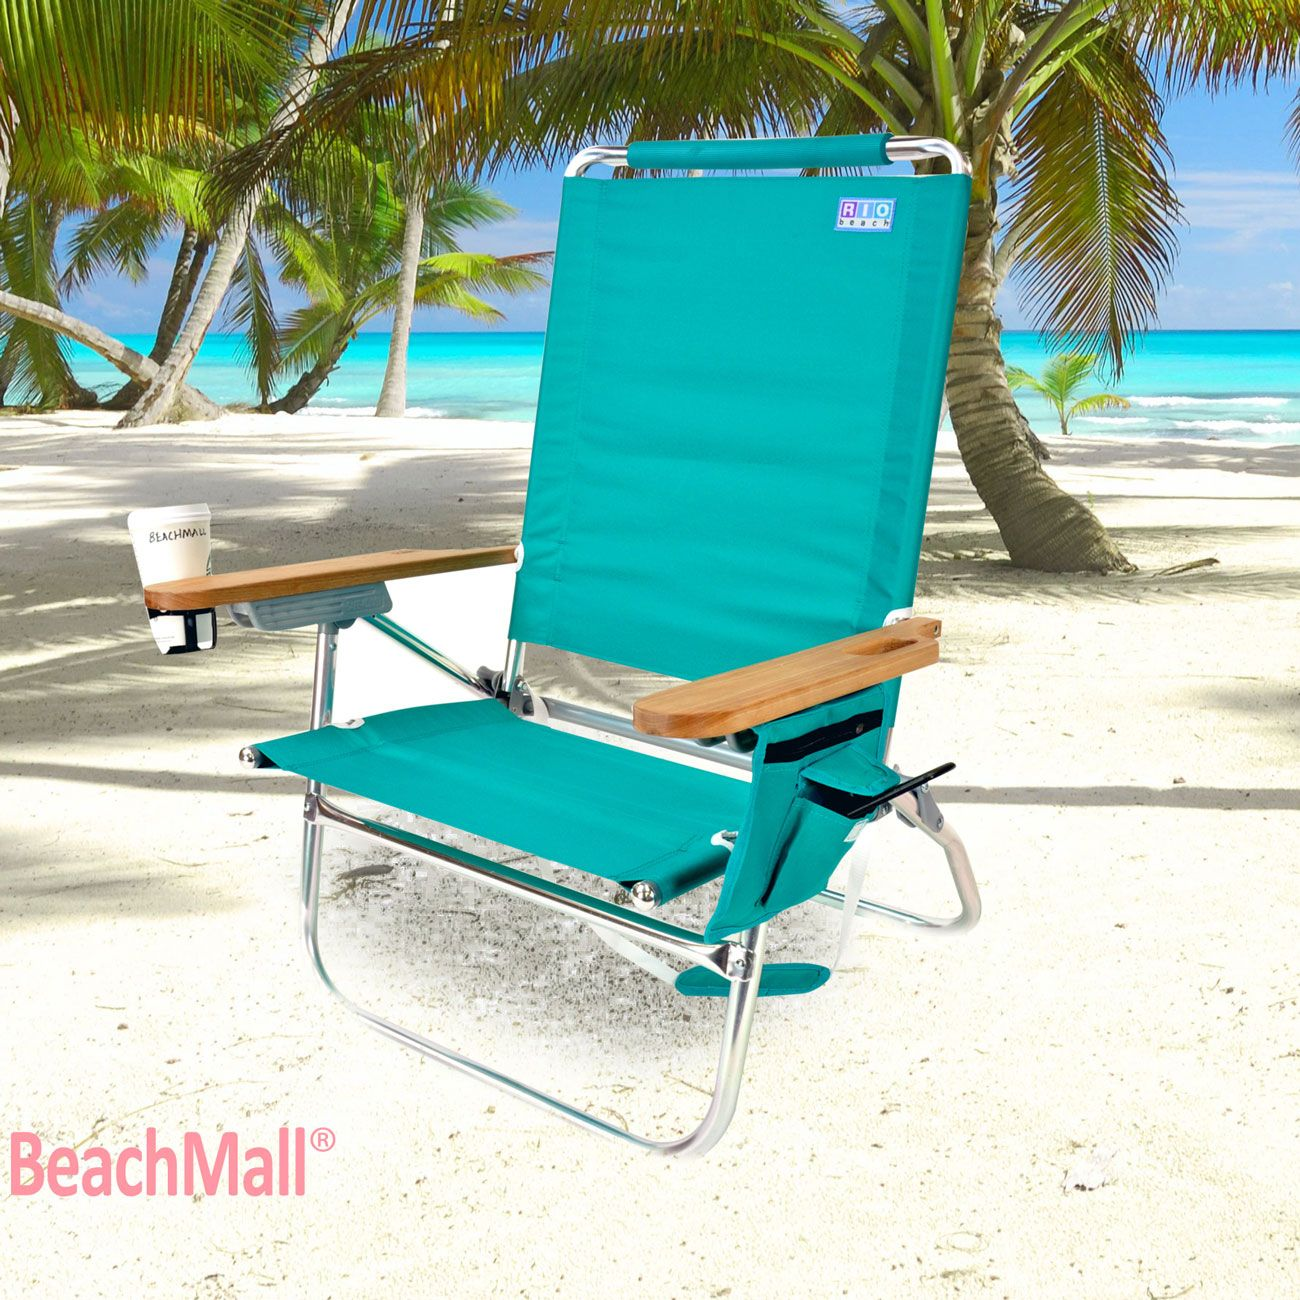 Beach Chairs With Cup Holders Posture Pack Seat Wedge Rio Brands Genuine Bum Chair W Holder Florida